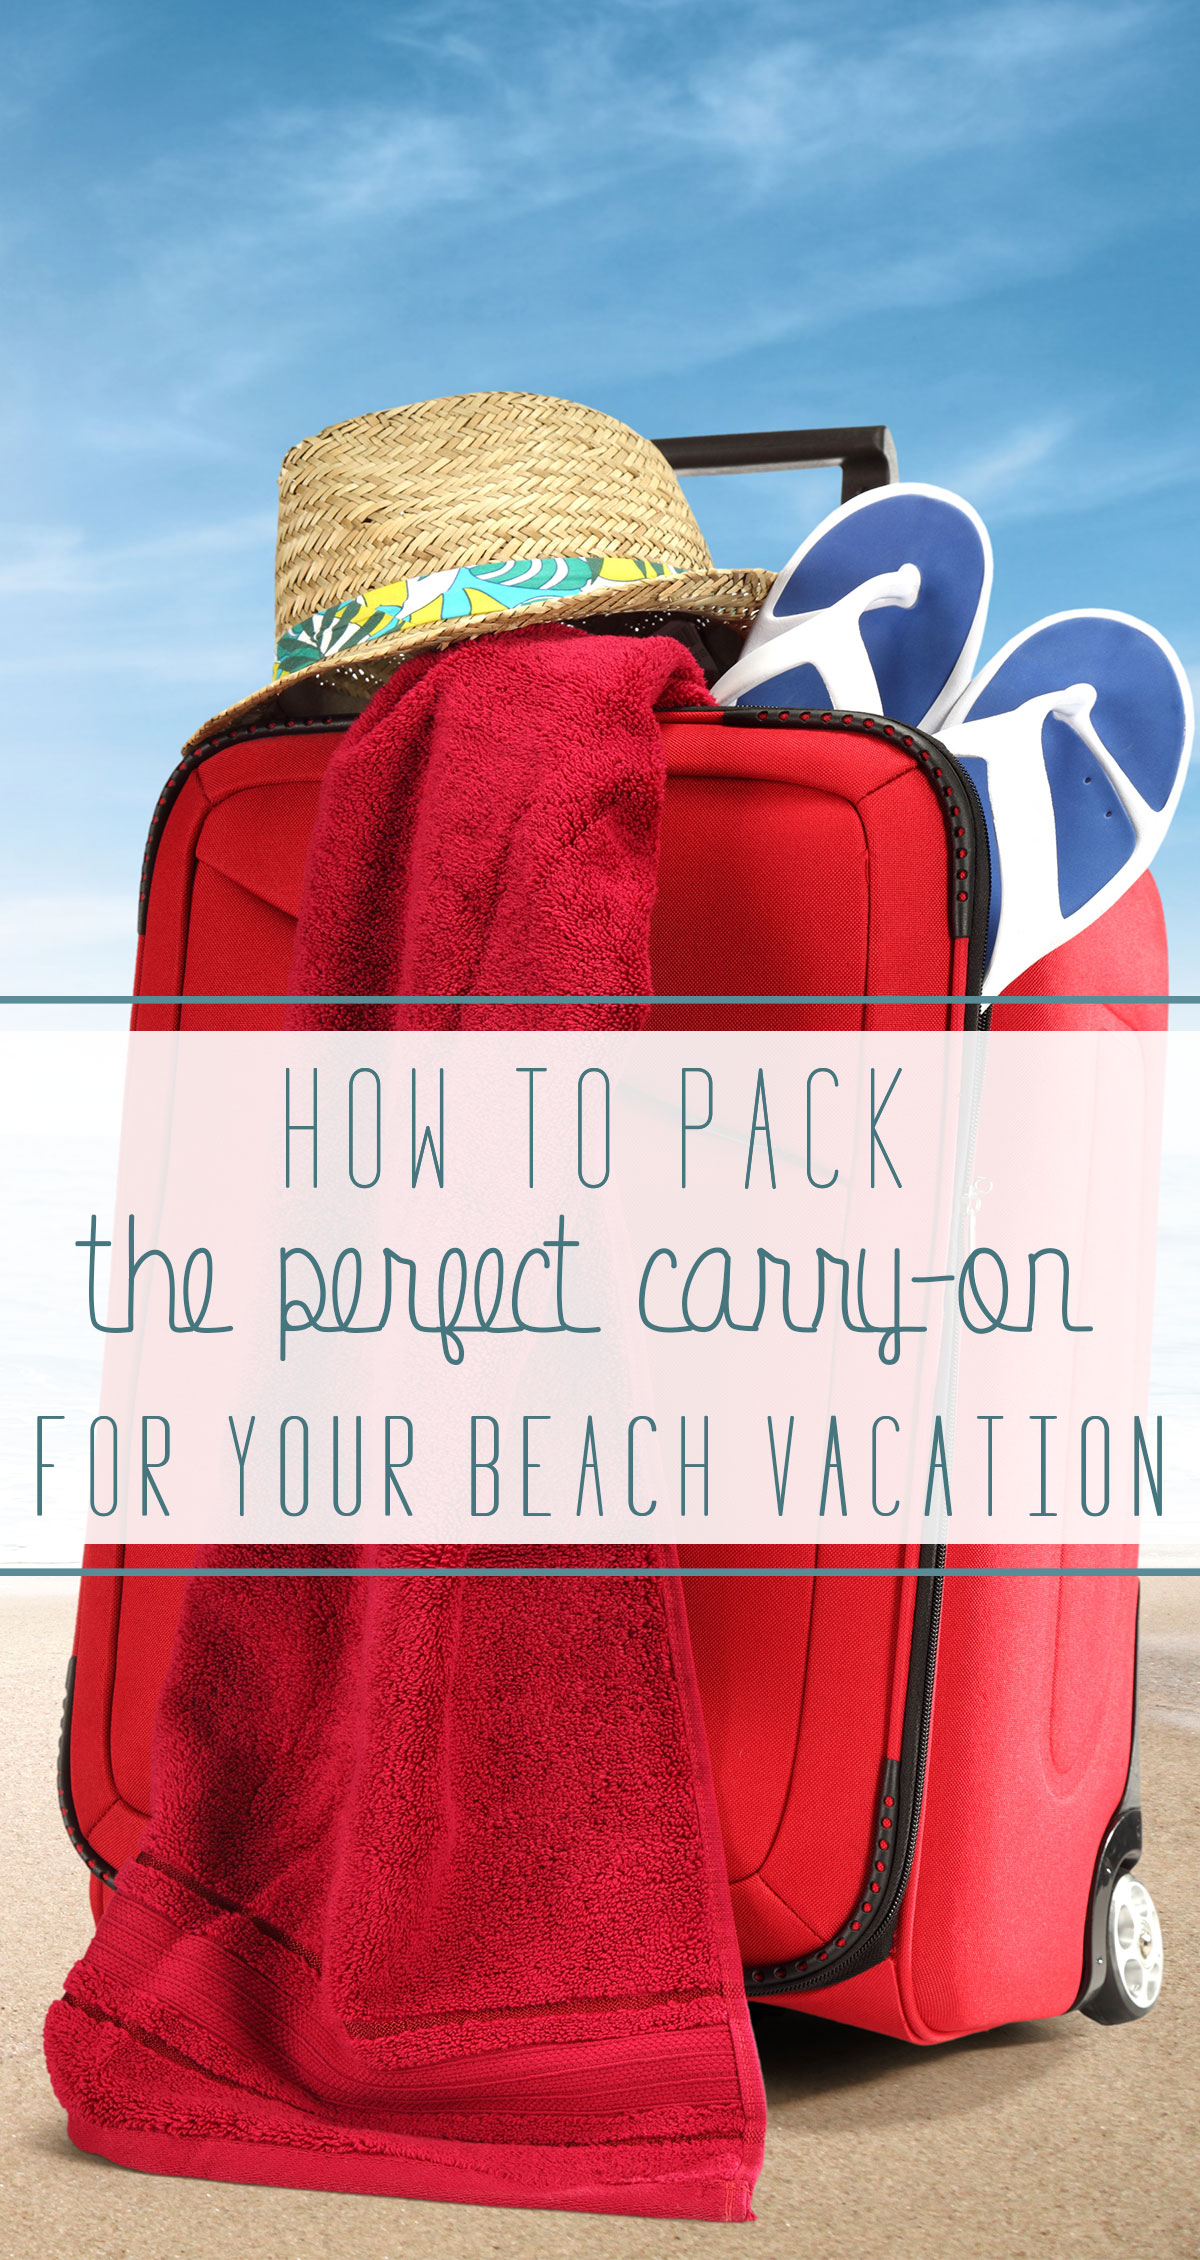 How to Pack the Perfect Carry-on for Your Beach Vacation Pin